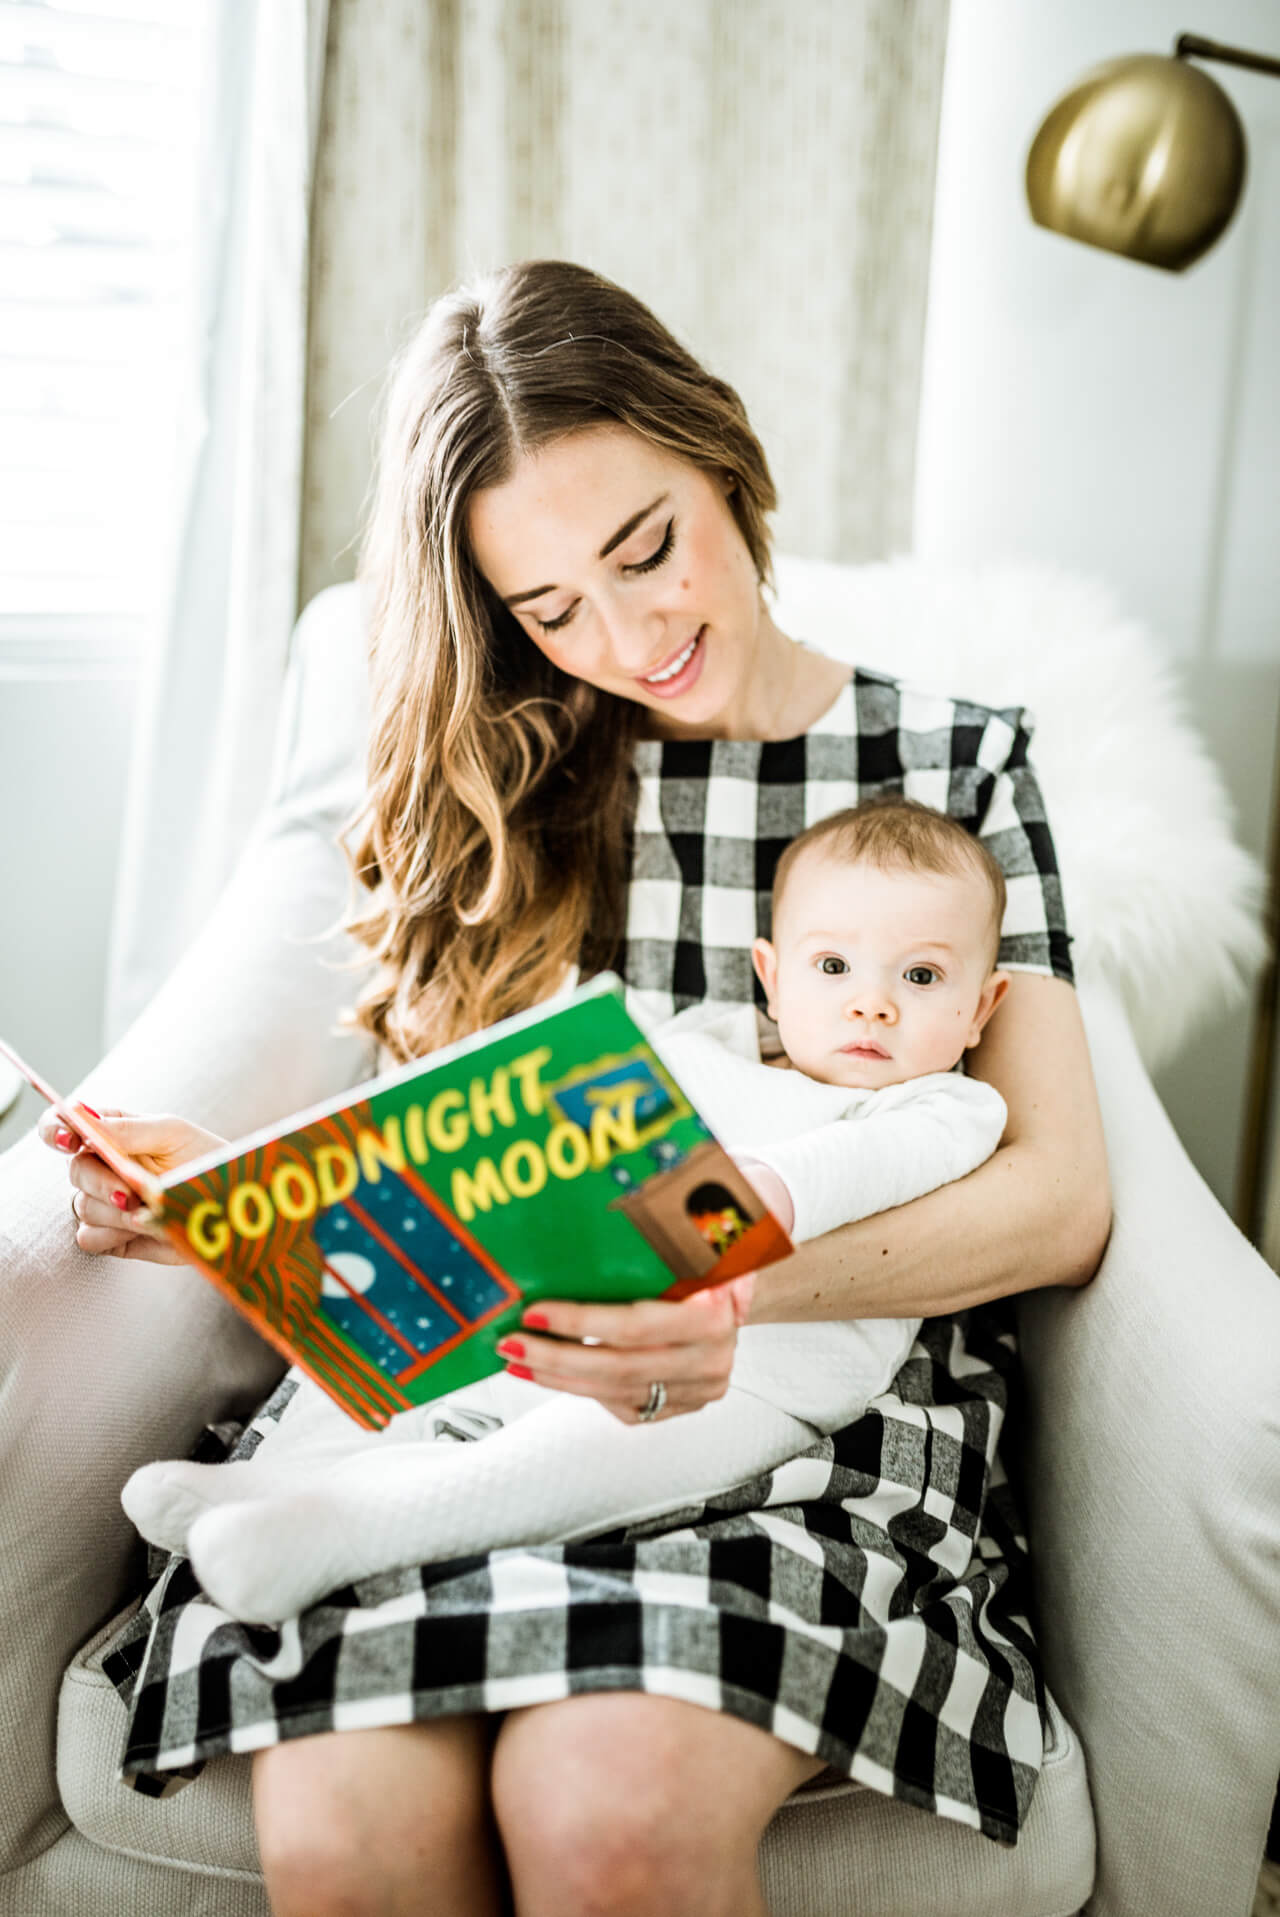 reading nighttime stories to baby